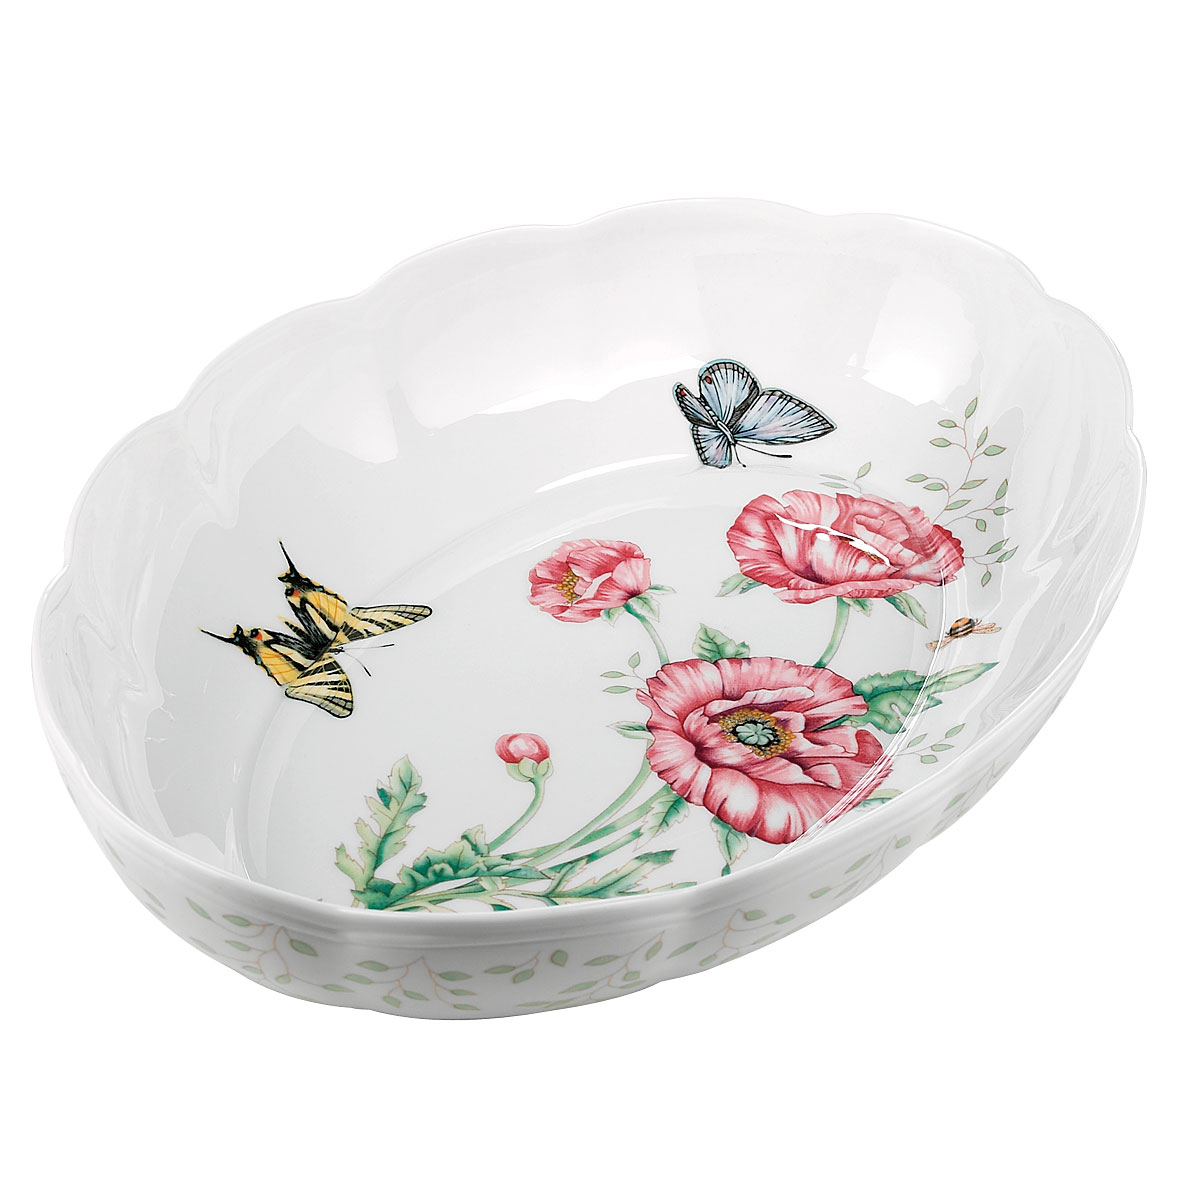 Lenox Butterfly Meadow Dinnerware Scalloped Oval Baker